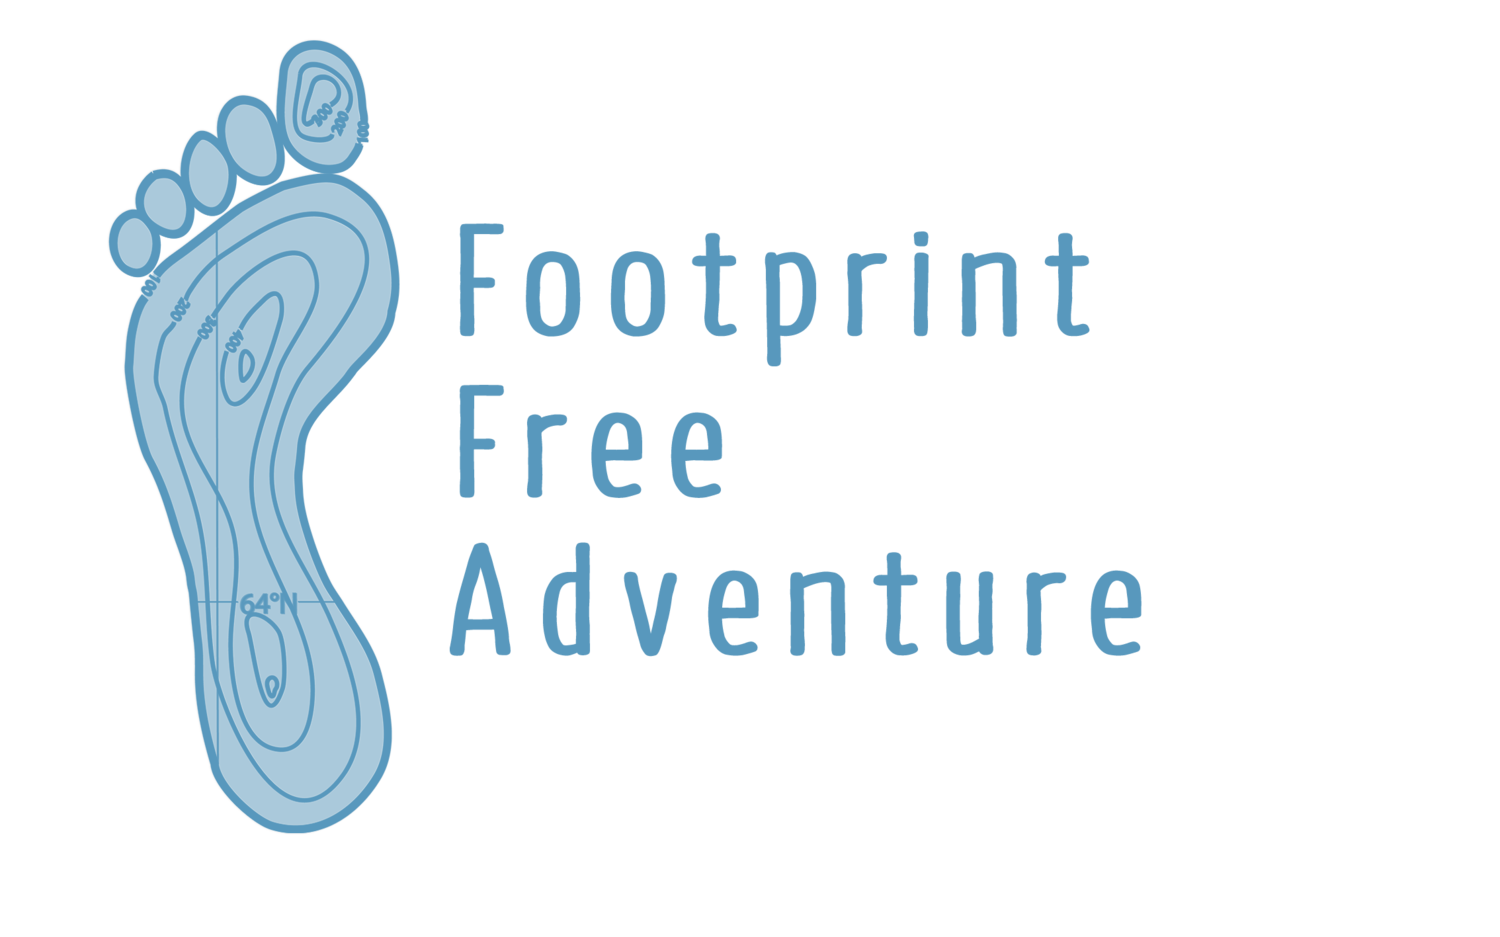 Footprint Free Adventure